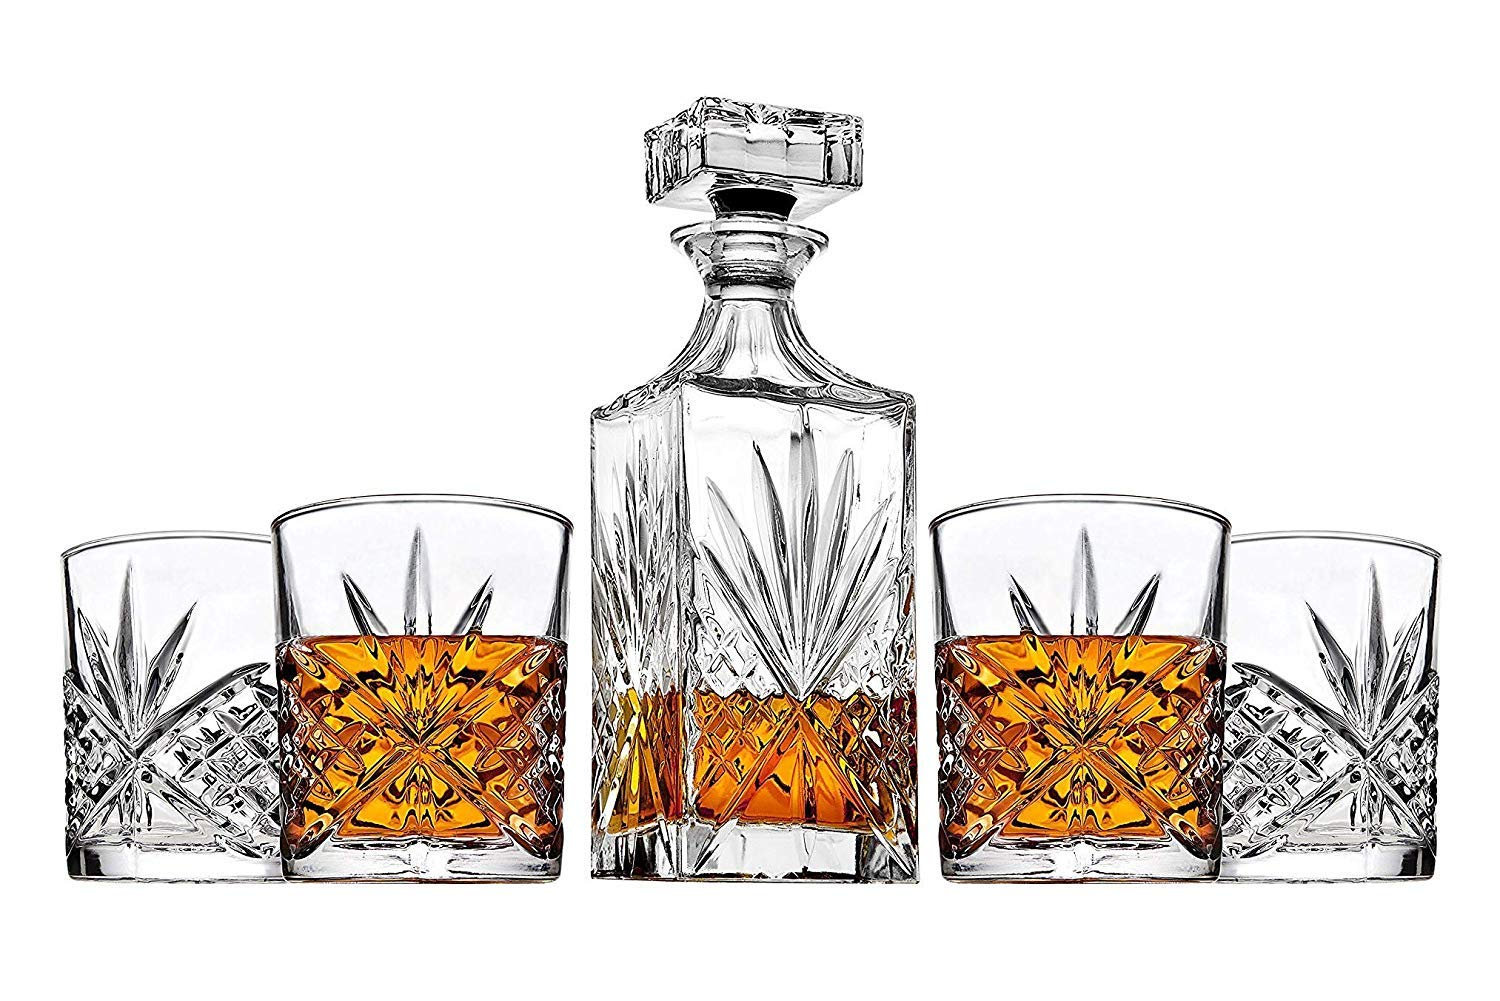 James Scott 5-Piece Decanter Set - Perfect for Liquor, Whiskey, Wine and Bourbon - Crystal Irish Cut Set Includes 1 x 25 oz. Decanter and 4 x 11 oz. Glasses | Packaged in a Beautiful Gift Box